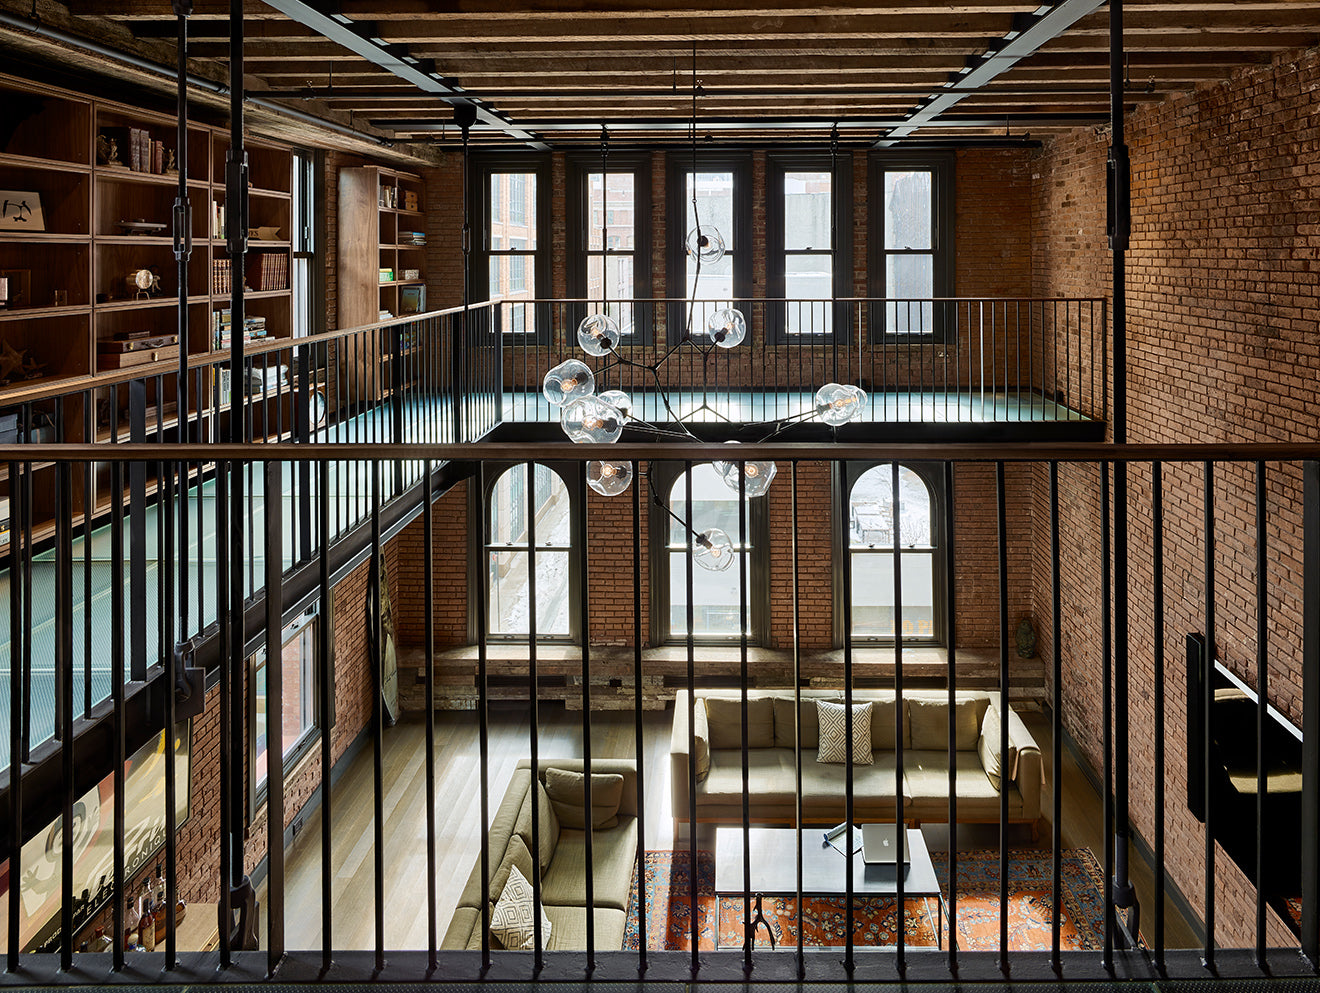 galleried library 10 Hubert Street exposed red brick with iron railings